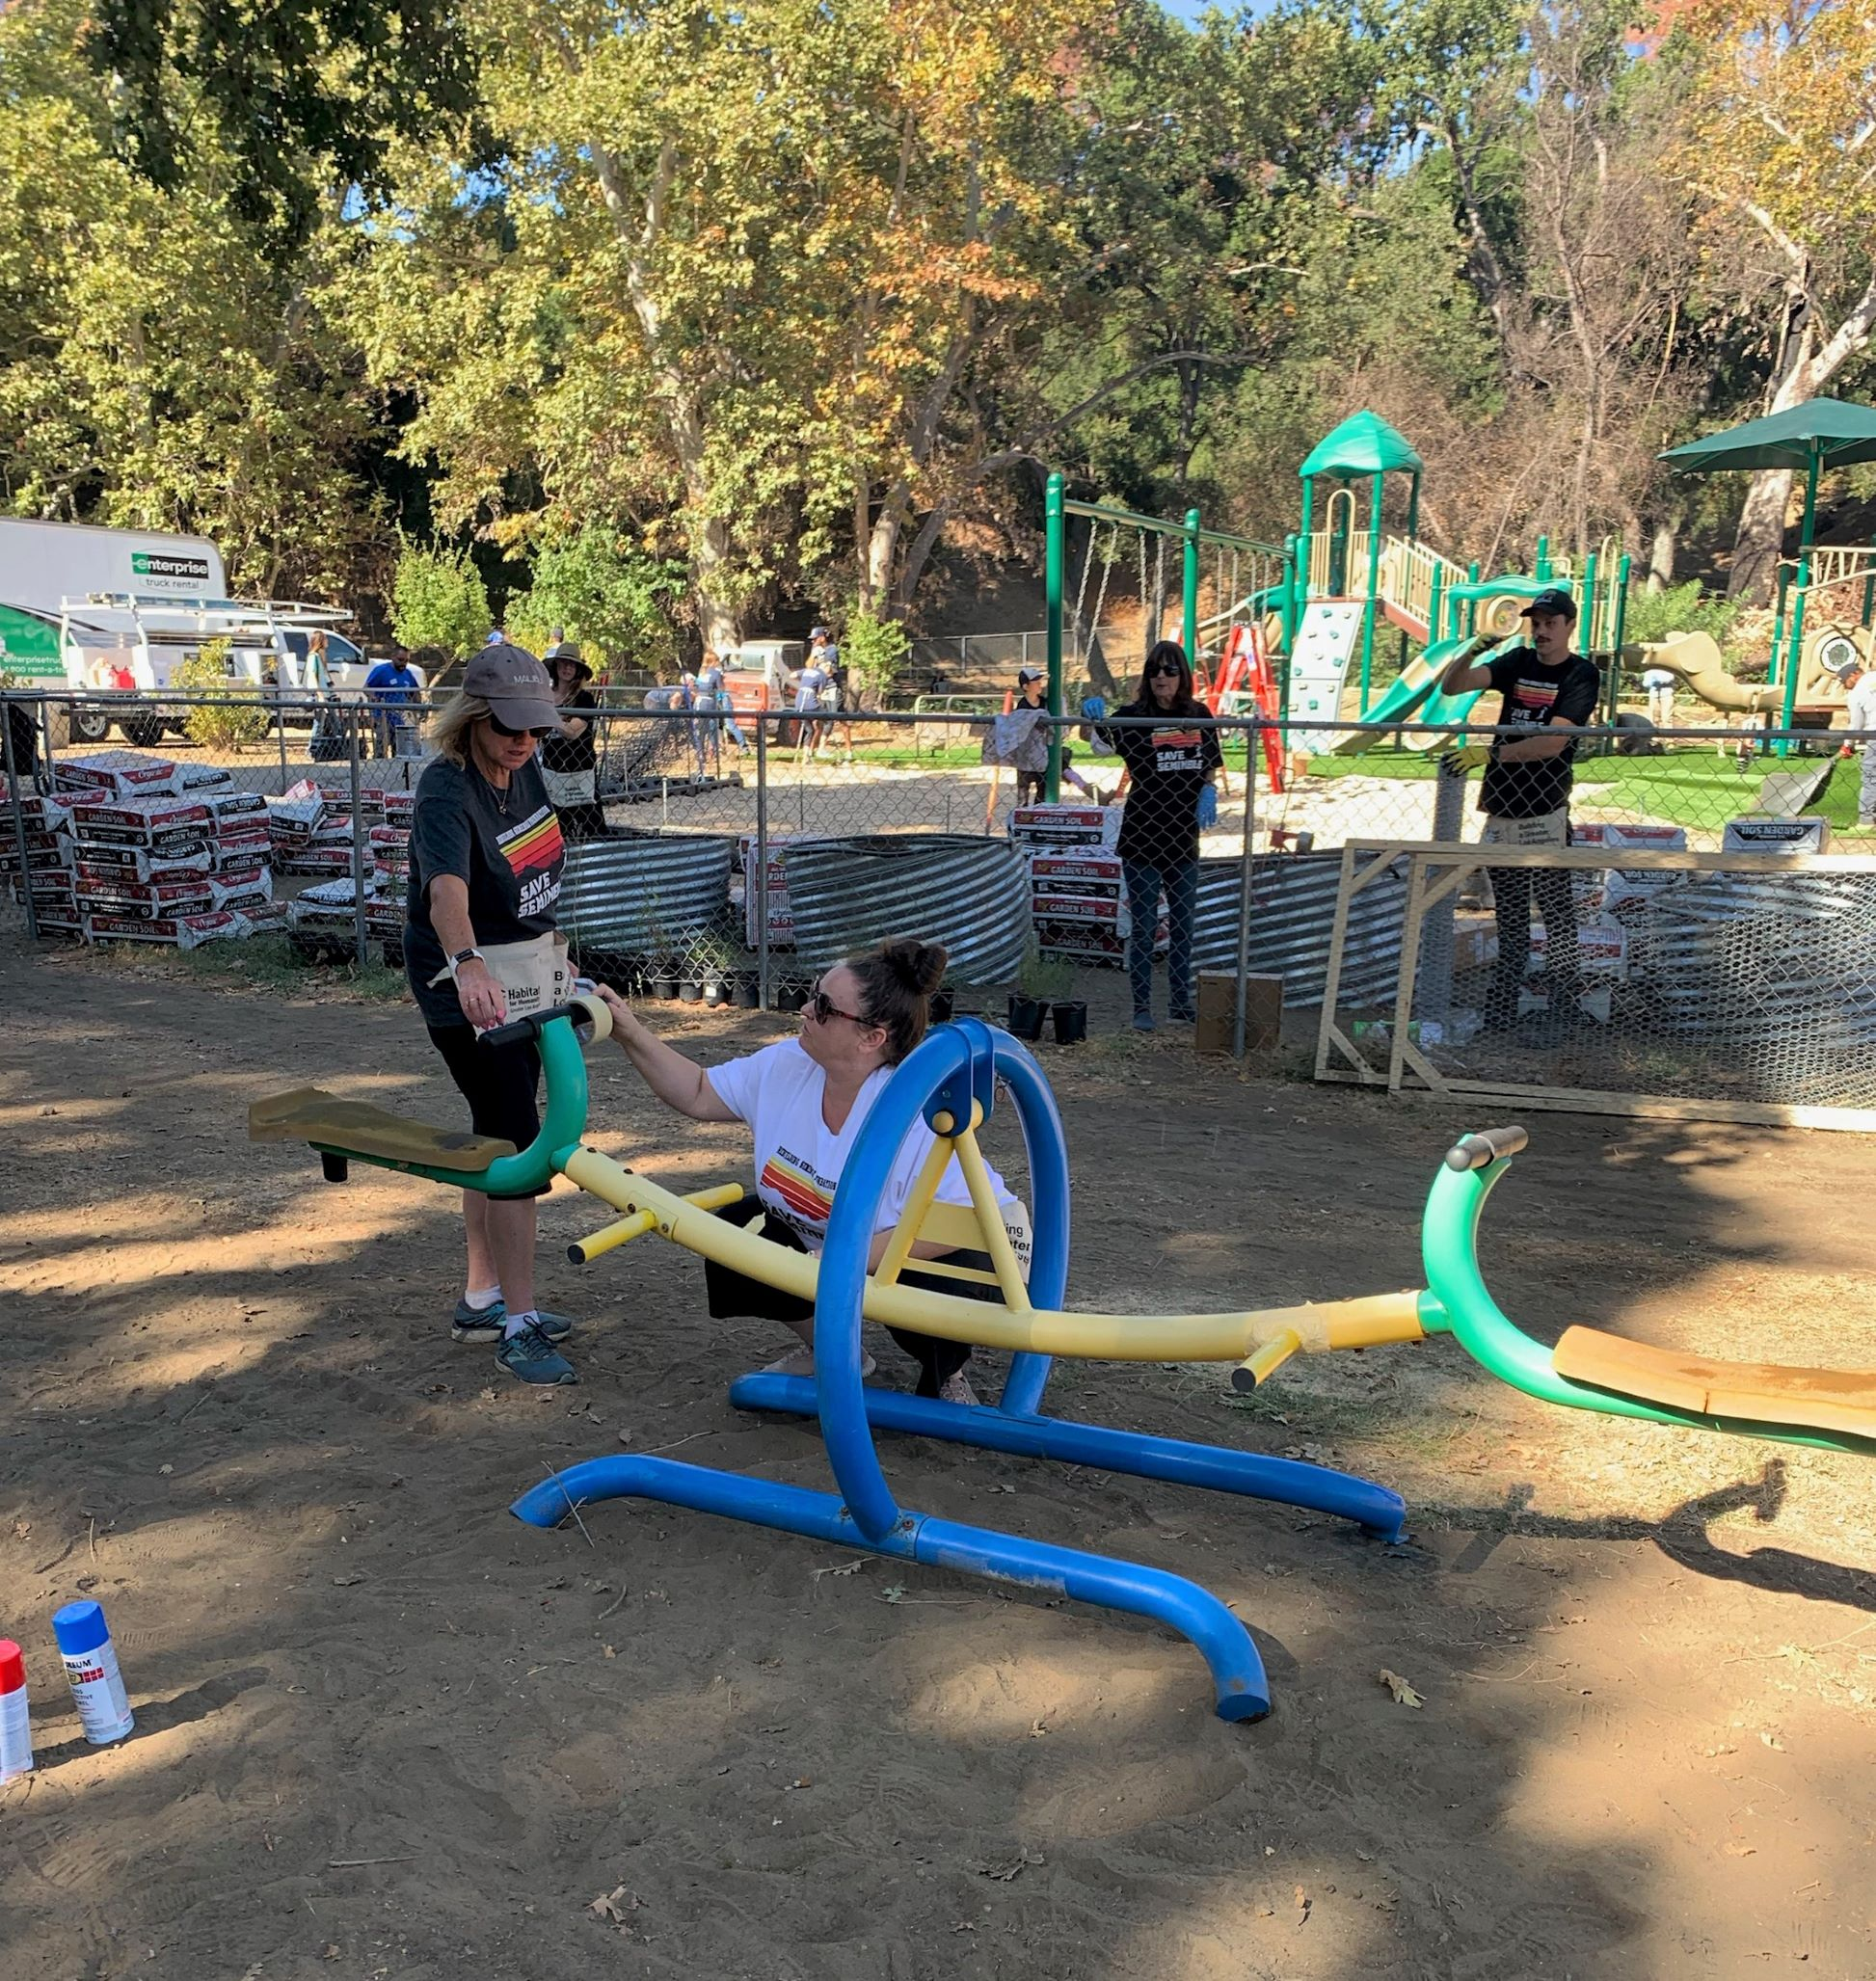 Two volunteers working on a teeter totter at a playground that is under construction.